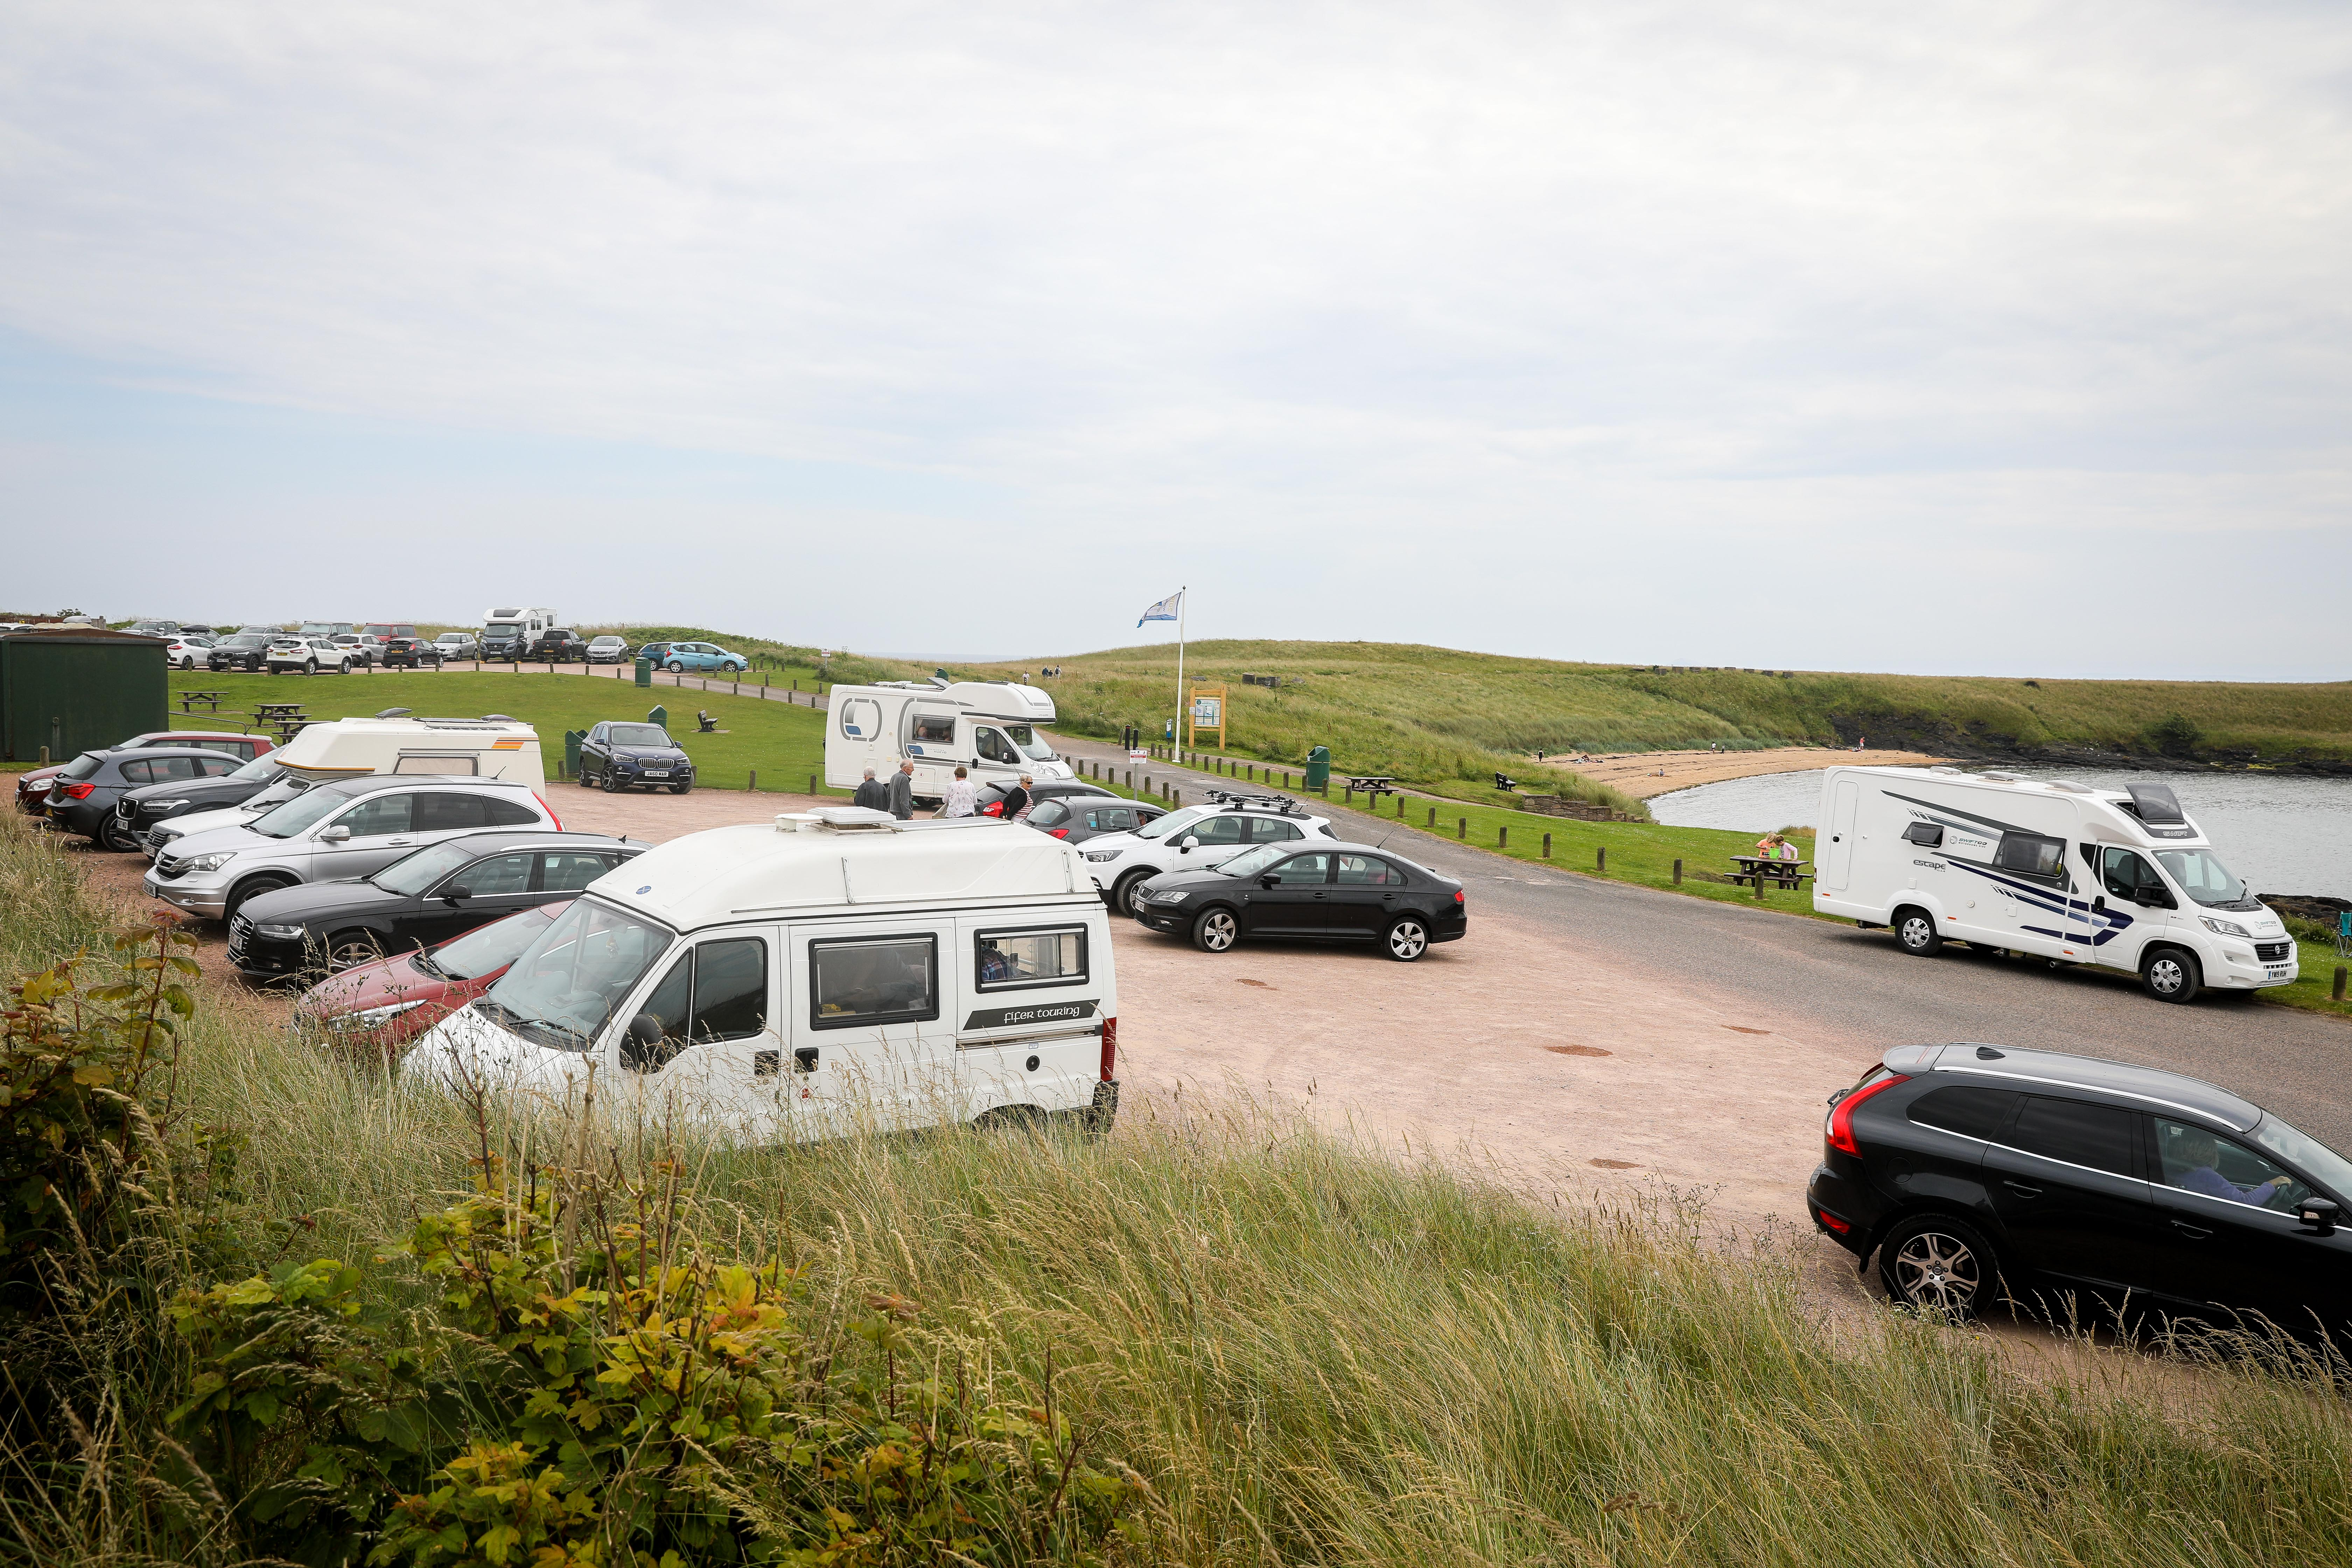 Campervans and cars filling up the car park and roadside as tourists arrive in campervans to enjoy Fife.